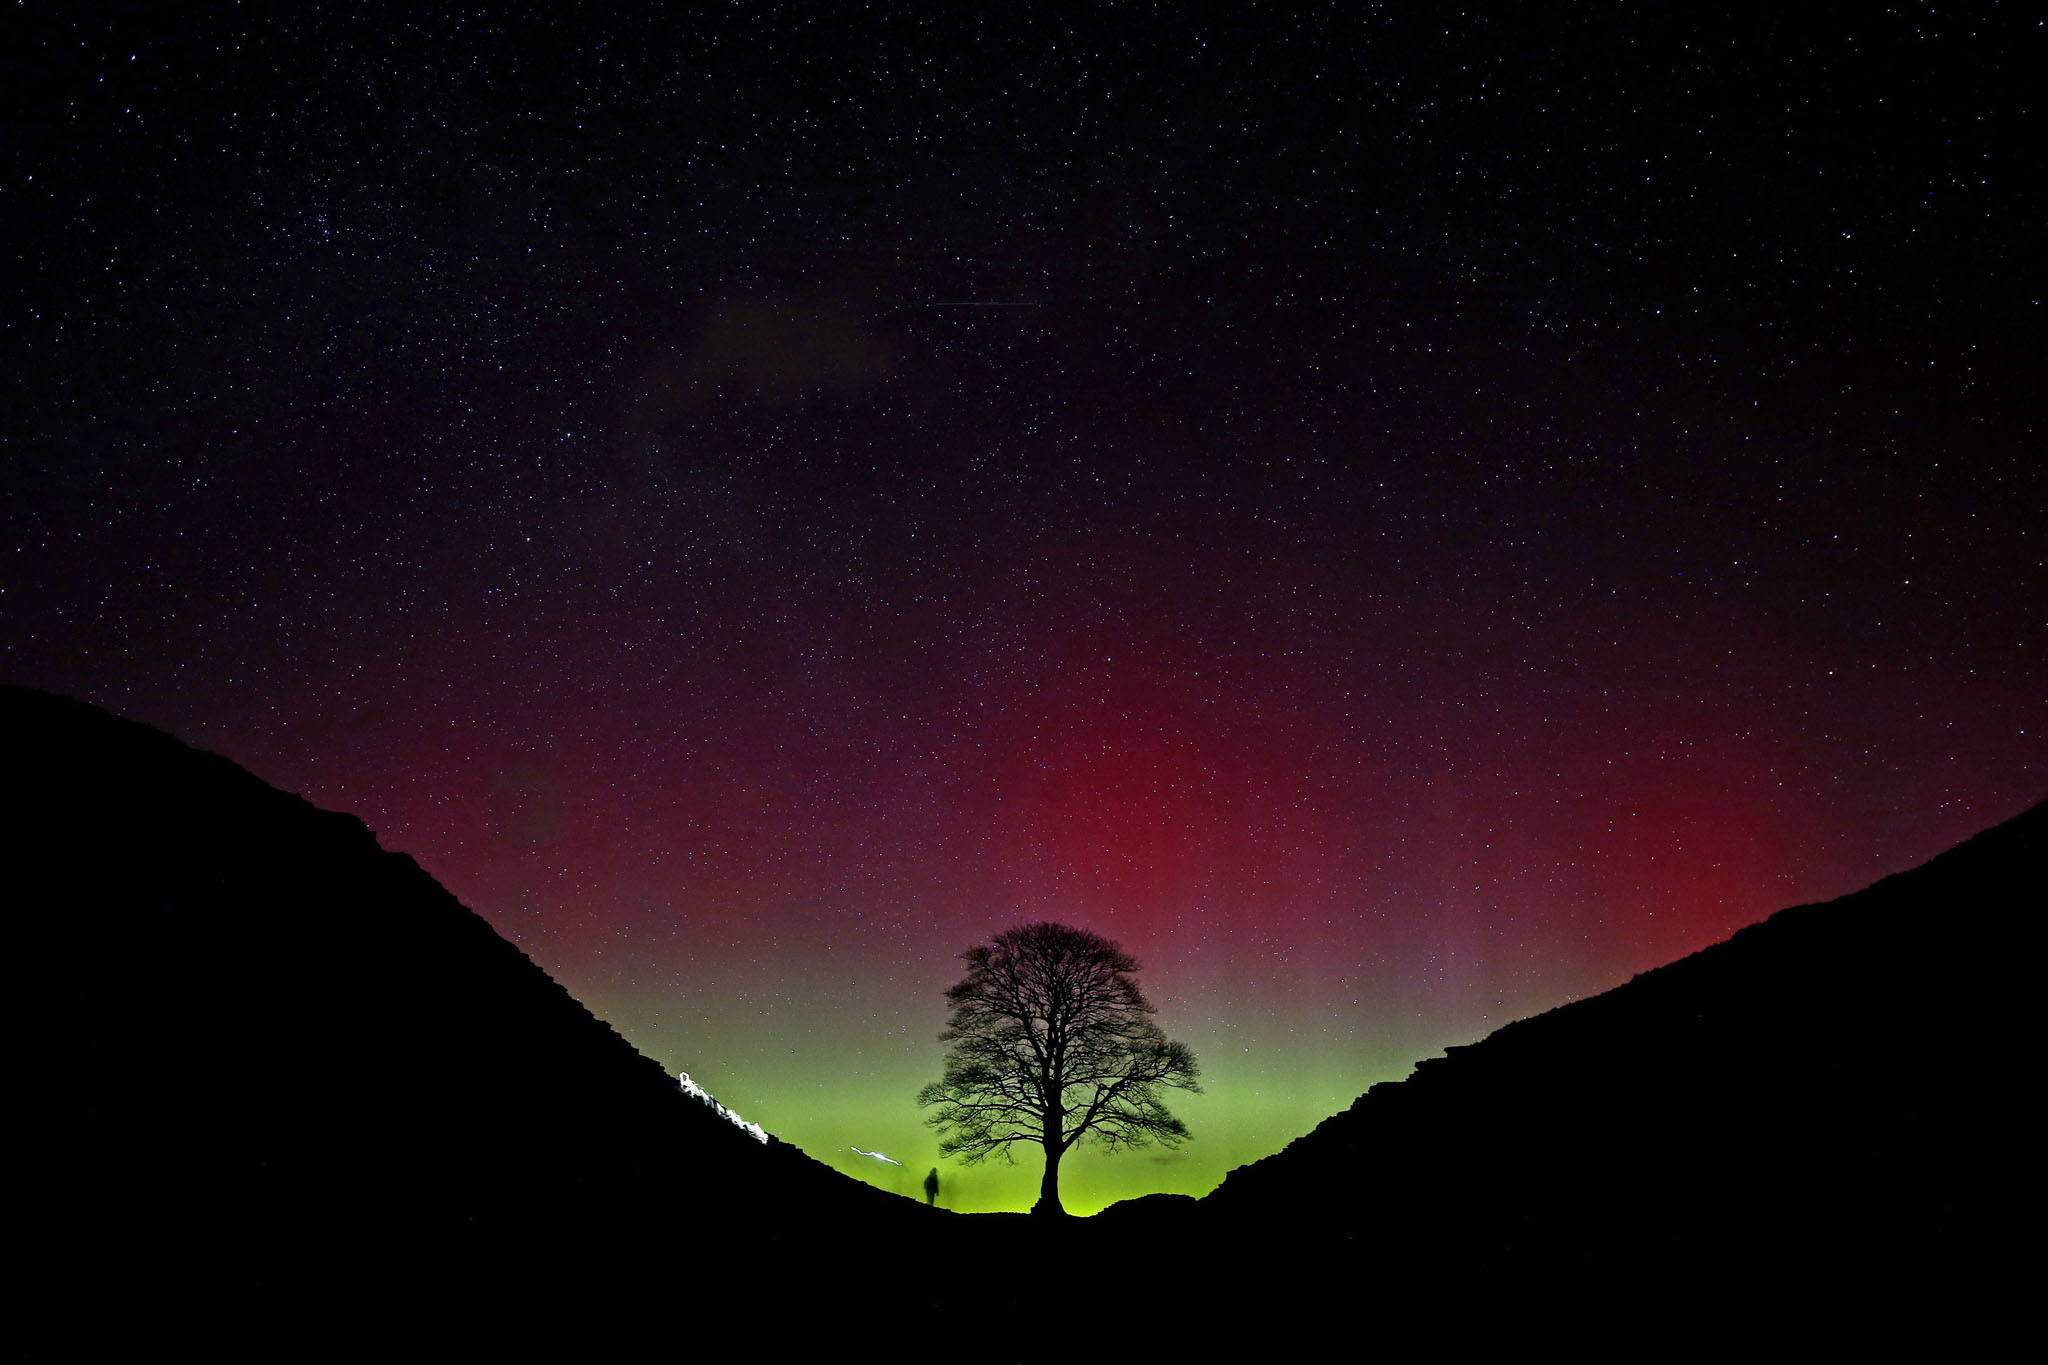 Spring weather Mar 7th 2016...The Northern Lights, or Aurora Borealis, shine over the Sycamore Gap at Hadrian's Wall in Northumberland. PRESS ASSOCIATION Photo. Picture date: Sunday March 6, 2016. The ethereal spectacle is caused by charged solar particles interacting with the Earth's magnetic field and is usually only visible in the far north of Scotland. See PA story WEATHER Aurora. Photo credit should read: Owen Humphreys/PA Wire